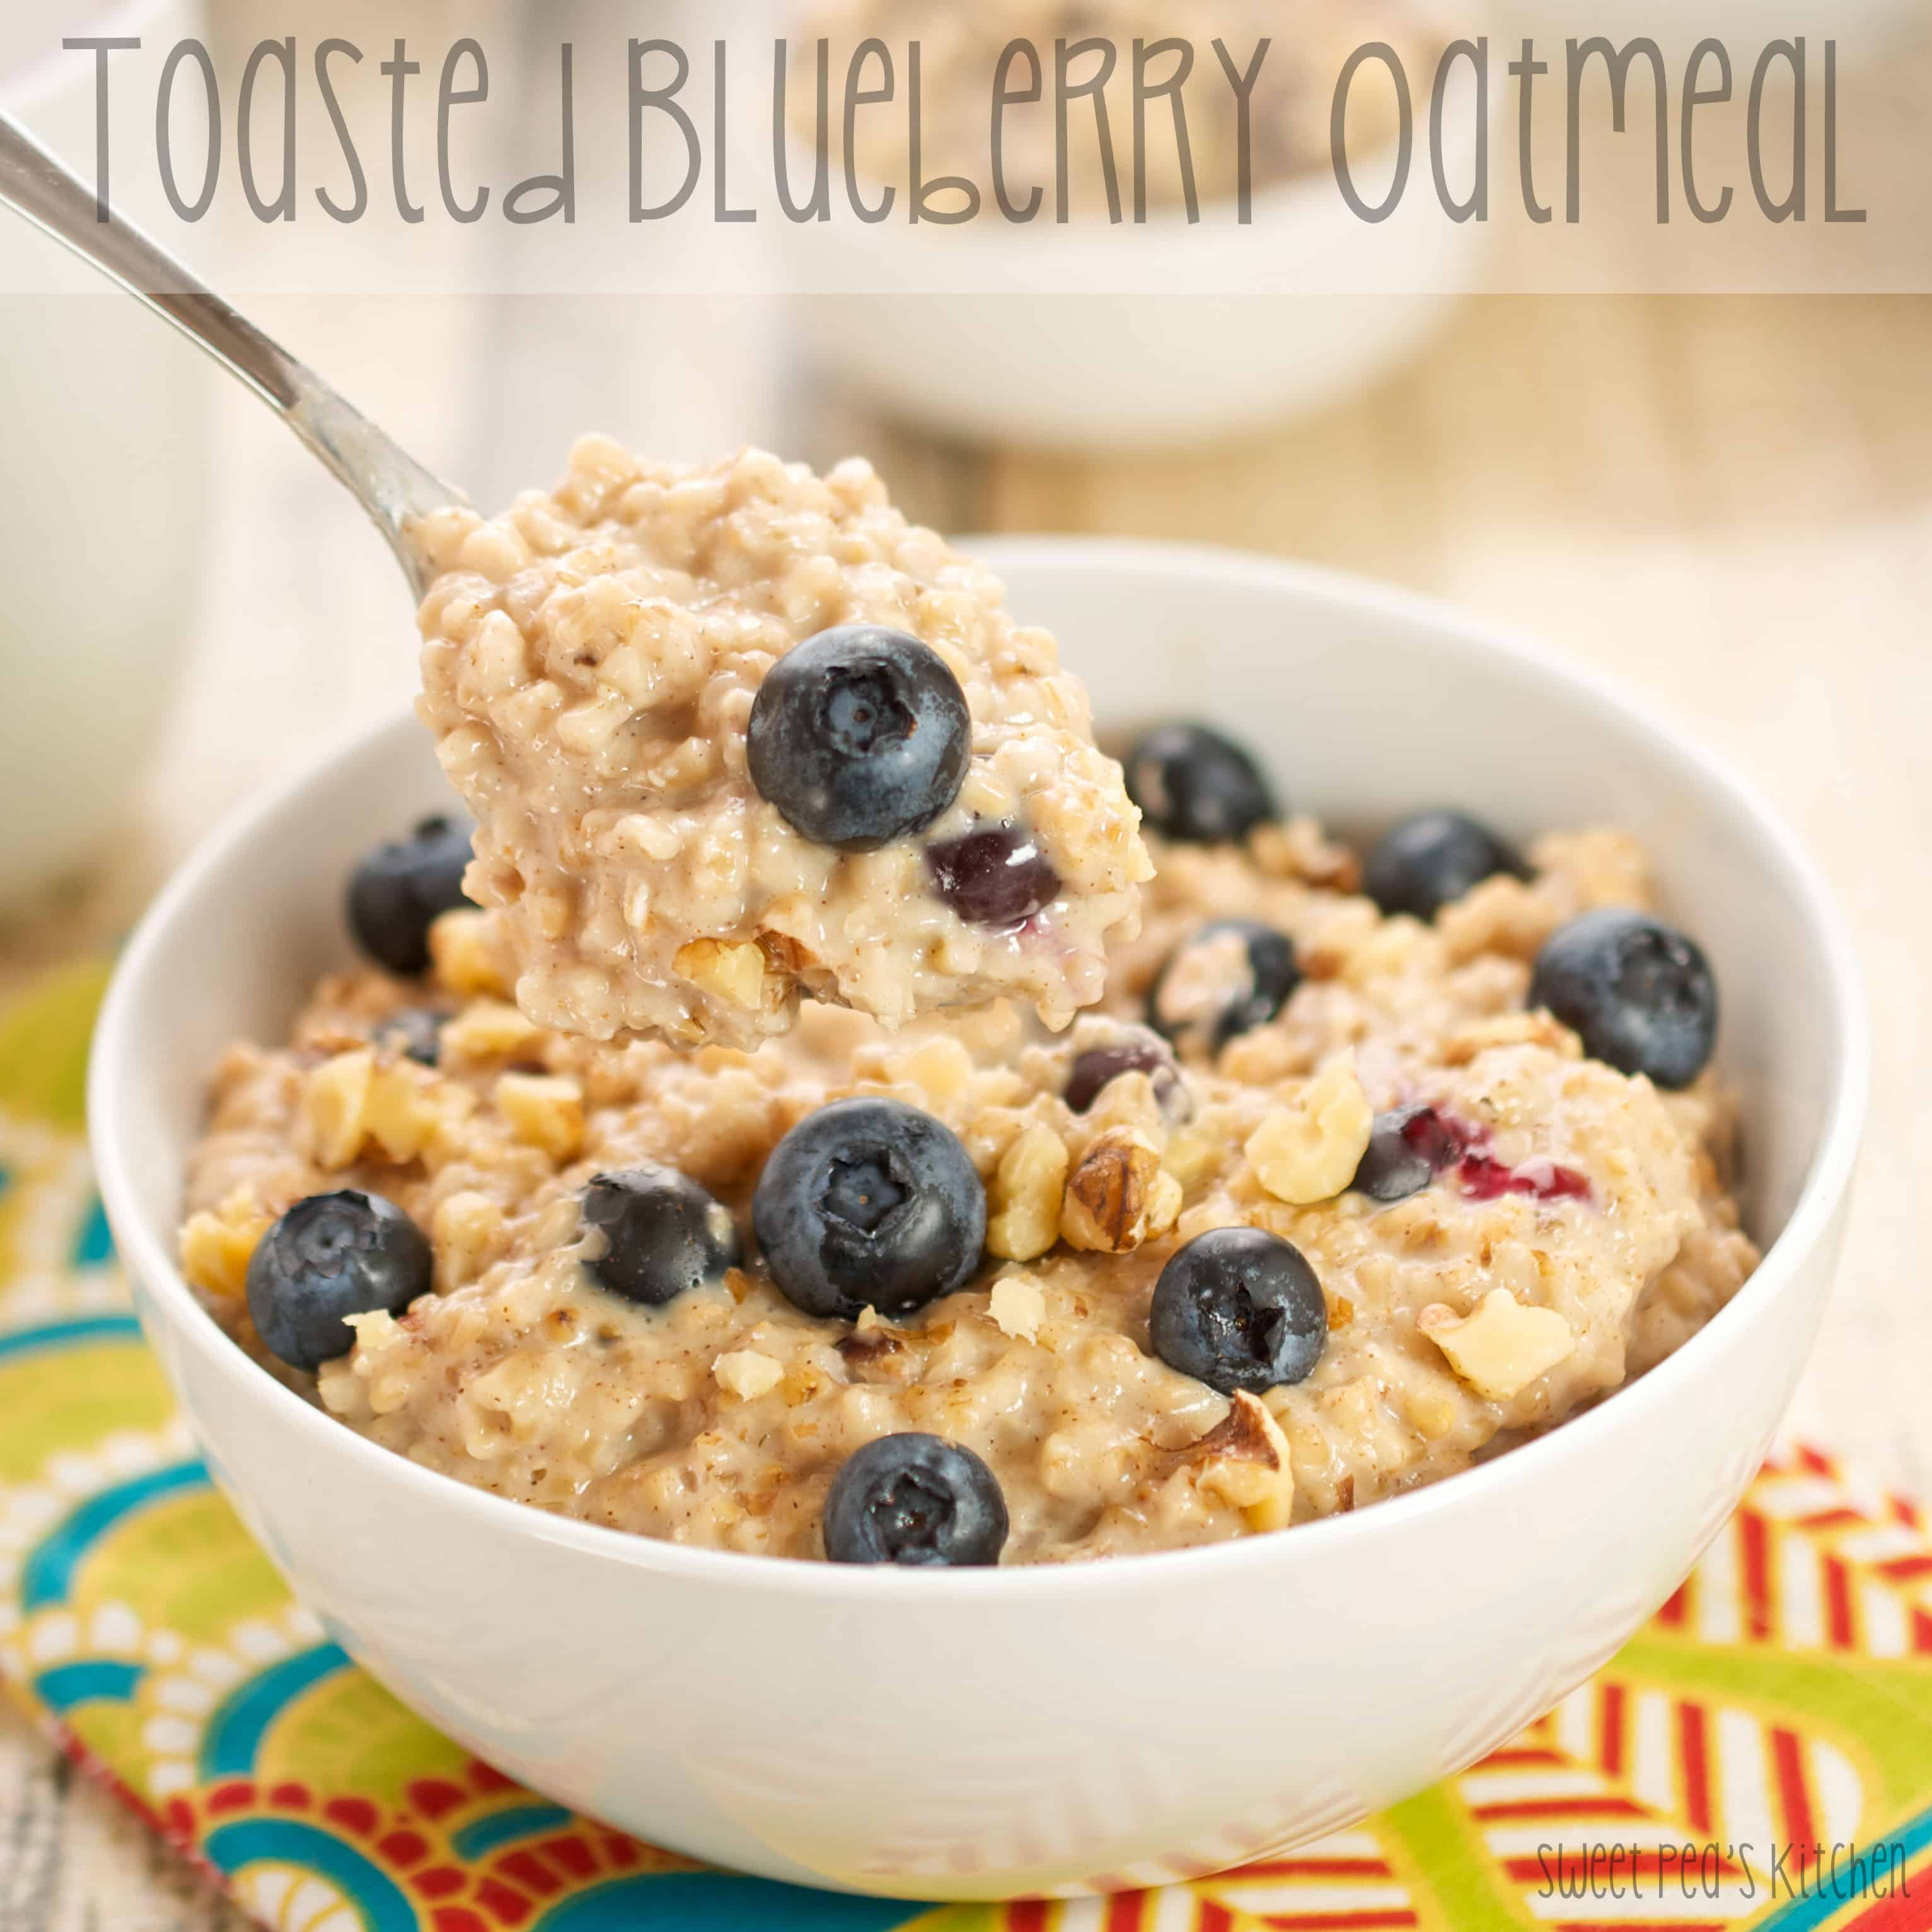 Toasted Blueberry Oatmeal